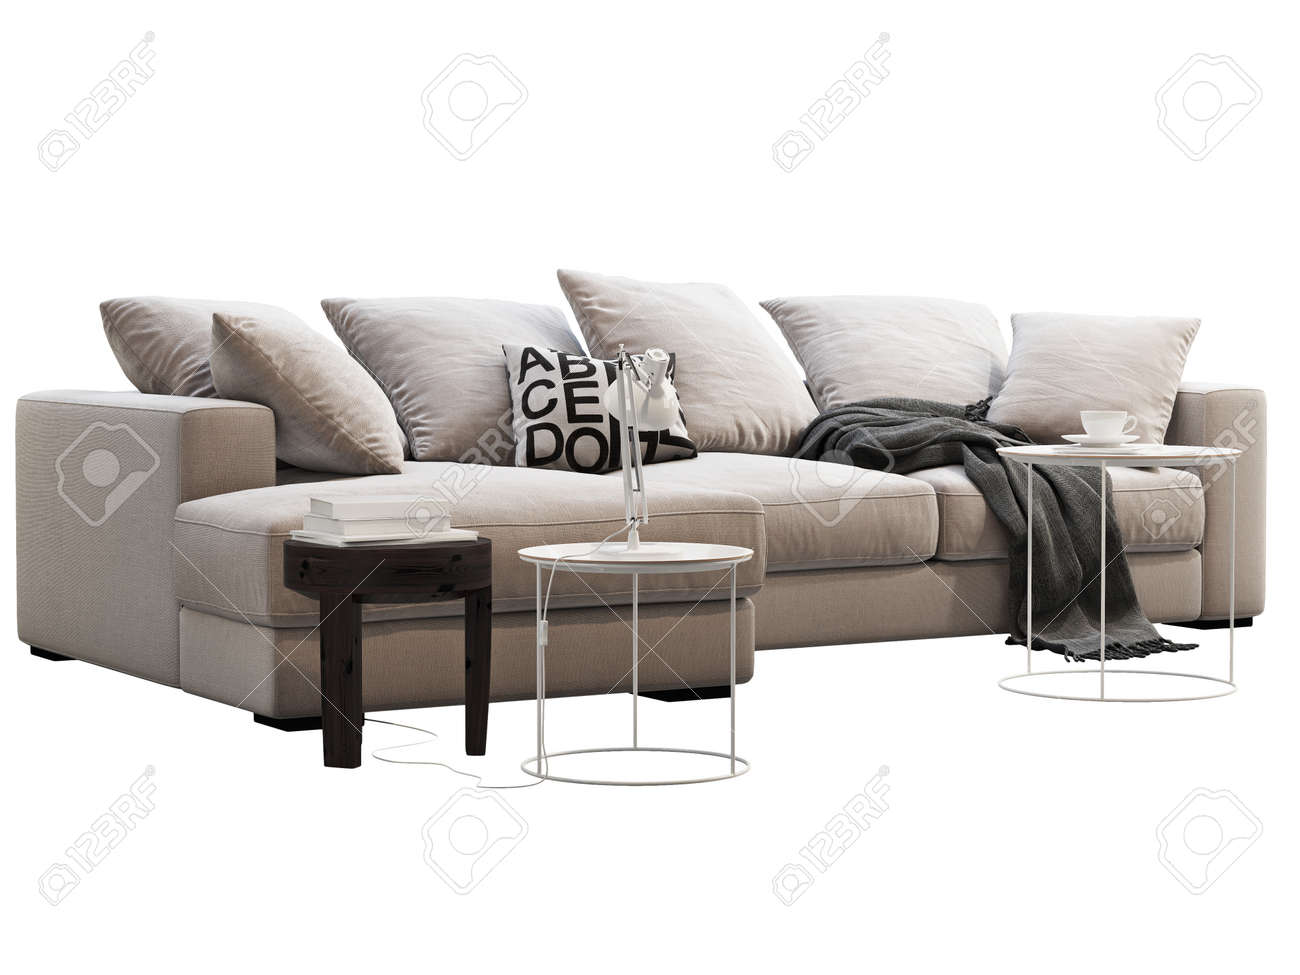 Modern Light Beige Chaise Lounge Fabric Sofa Modern Furniture Stock Photo Picture And Royalty Free Image Image 150015169